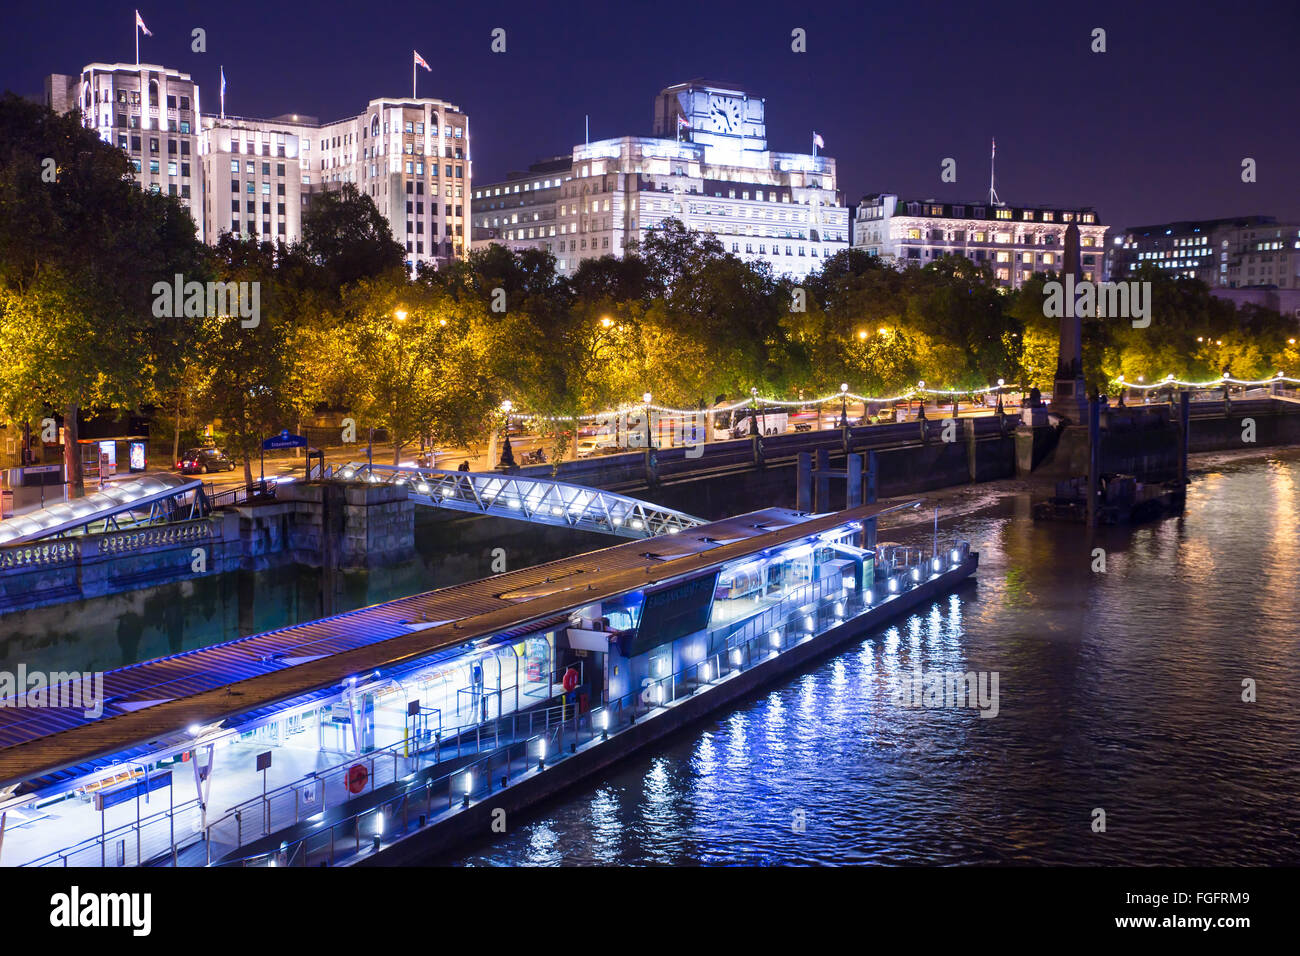 View of the Victoria Embankment in London seen at night - Stock Image